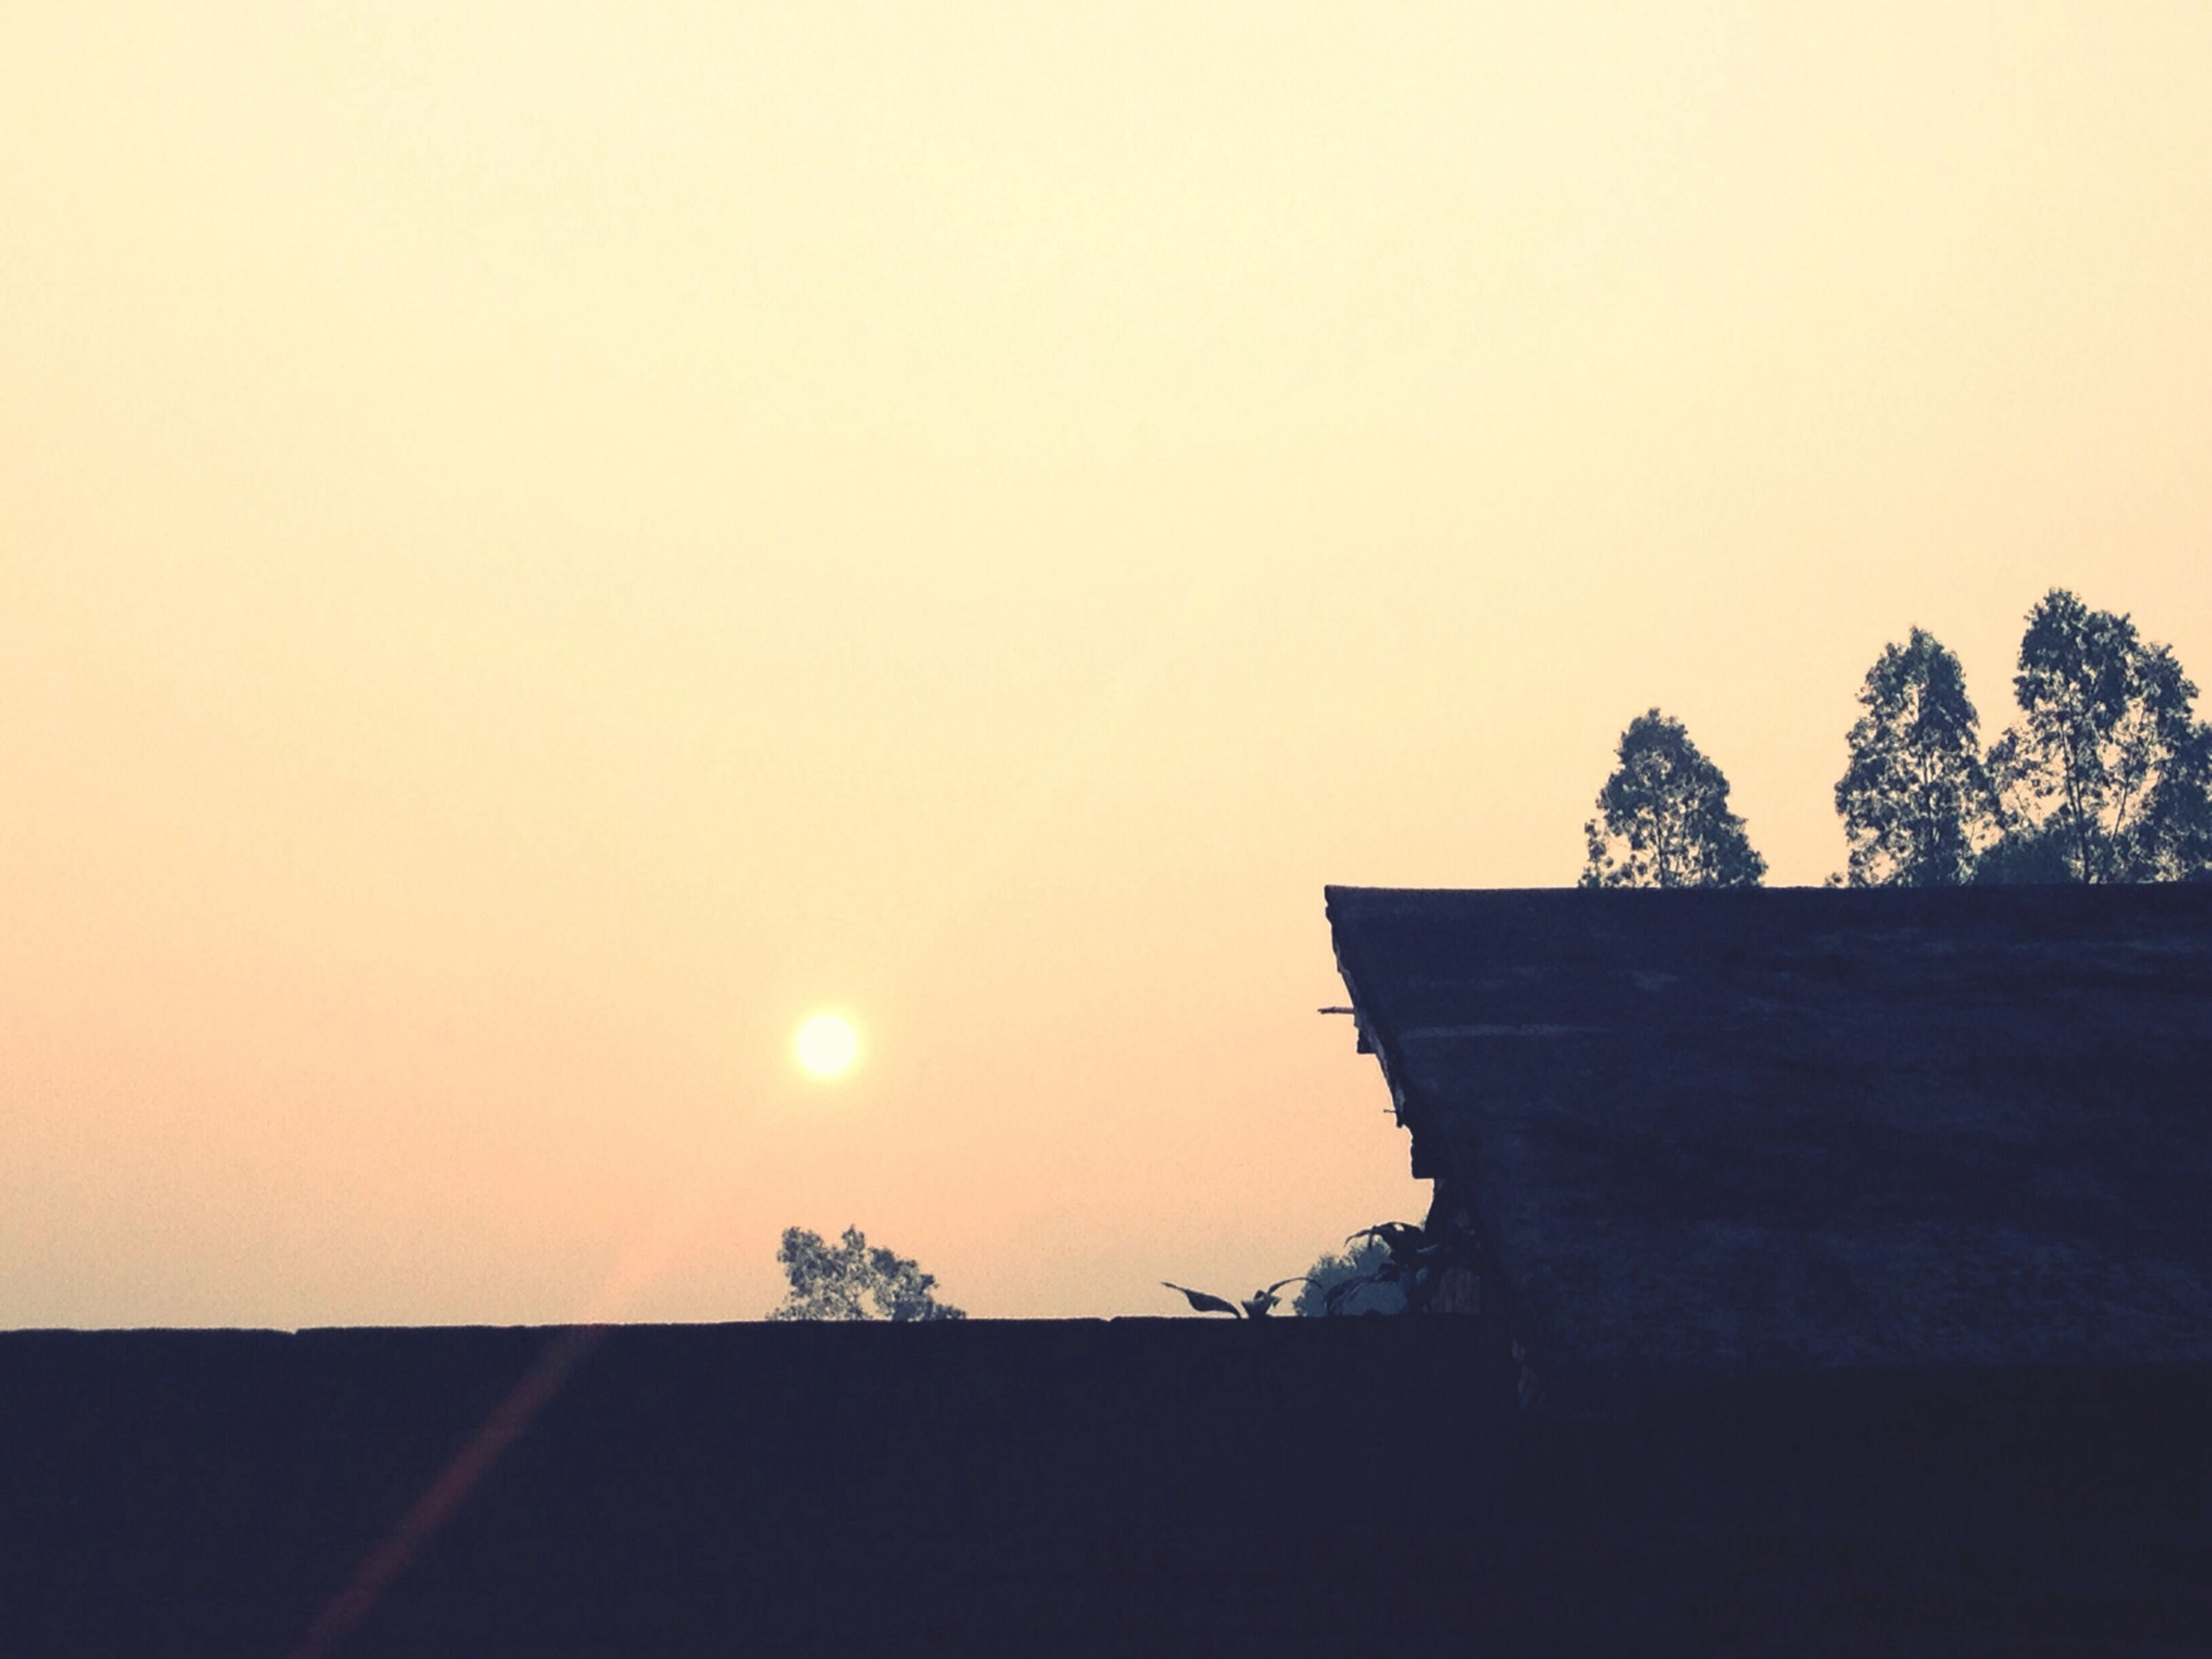 silhouette, sunset, copy space, clear sky, tree, tranquility, tranquil scene, low angle view, beauty in nature, nature, sun, built structure, sky, scenics, building exterior, architecture, outline, dusk, outdoors, no people